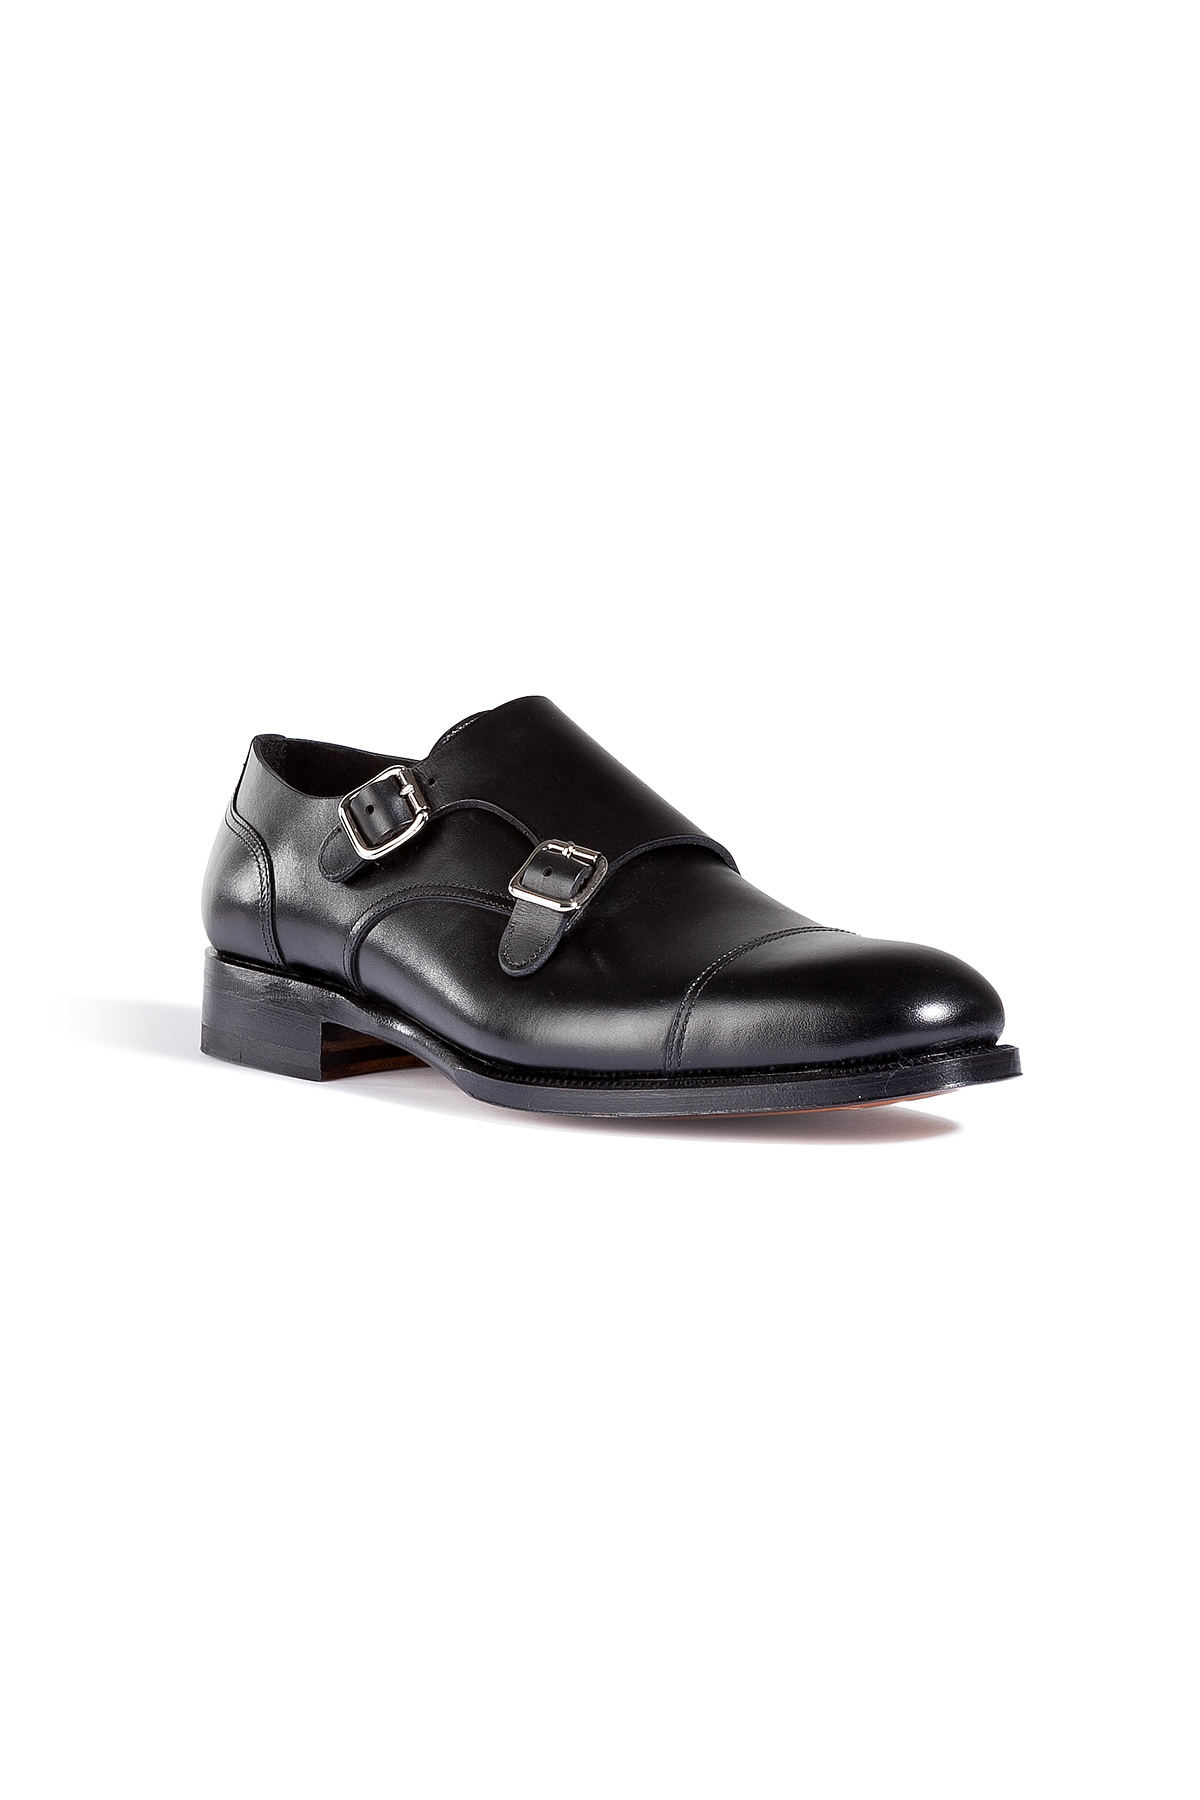 dsquared 178 leather monk shoes in black for lyst